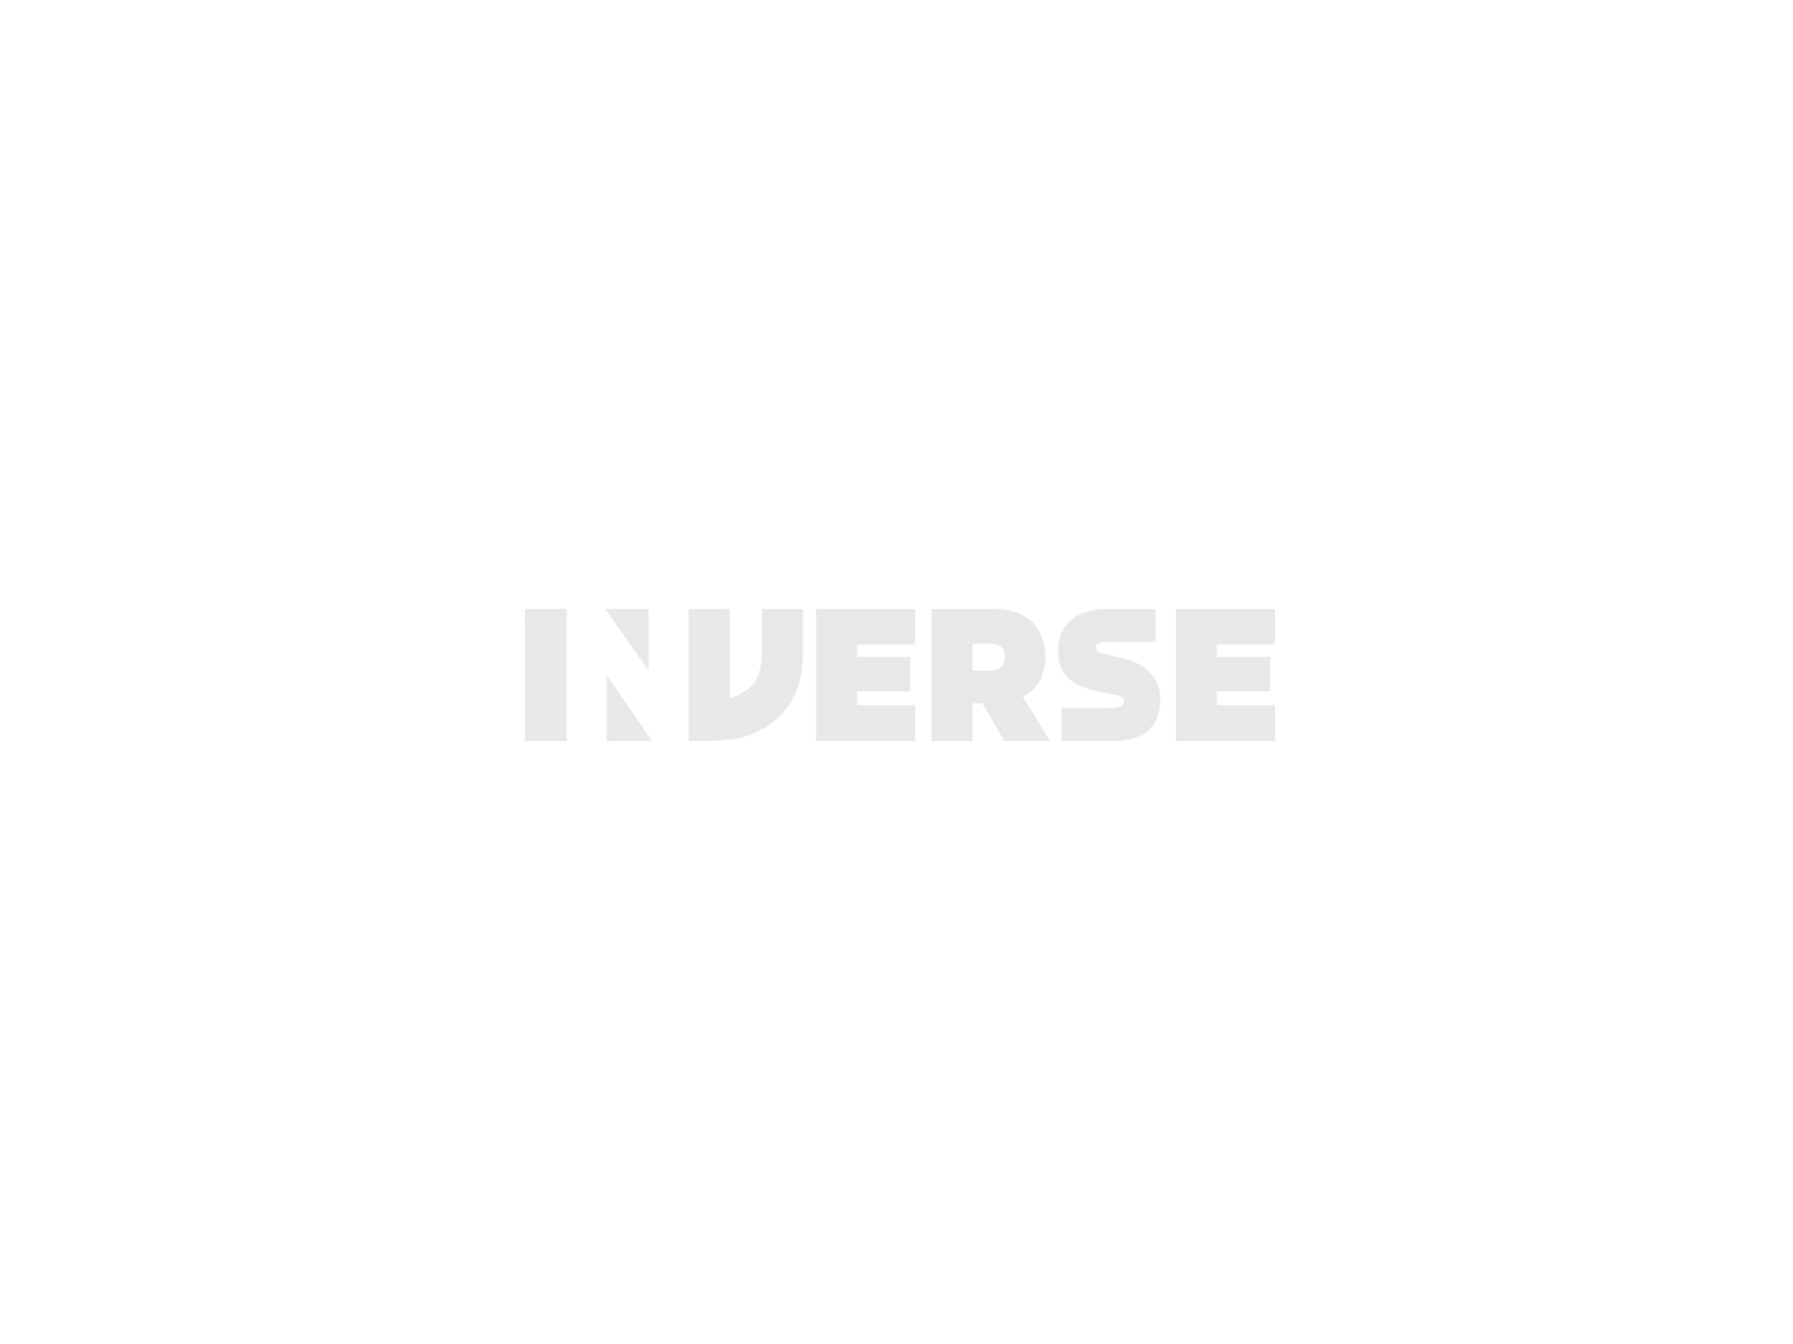 Elliot staring at a computer screen looking puzzled, which real hackers say is 90% of the job.